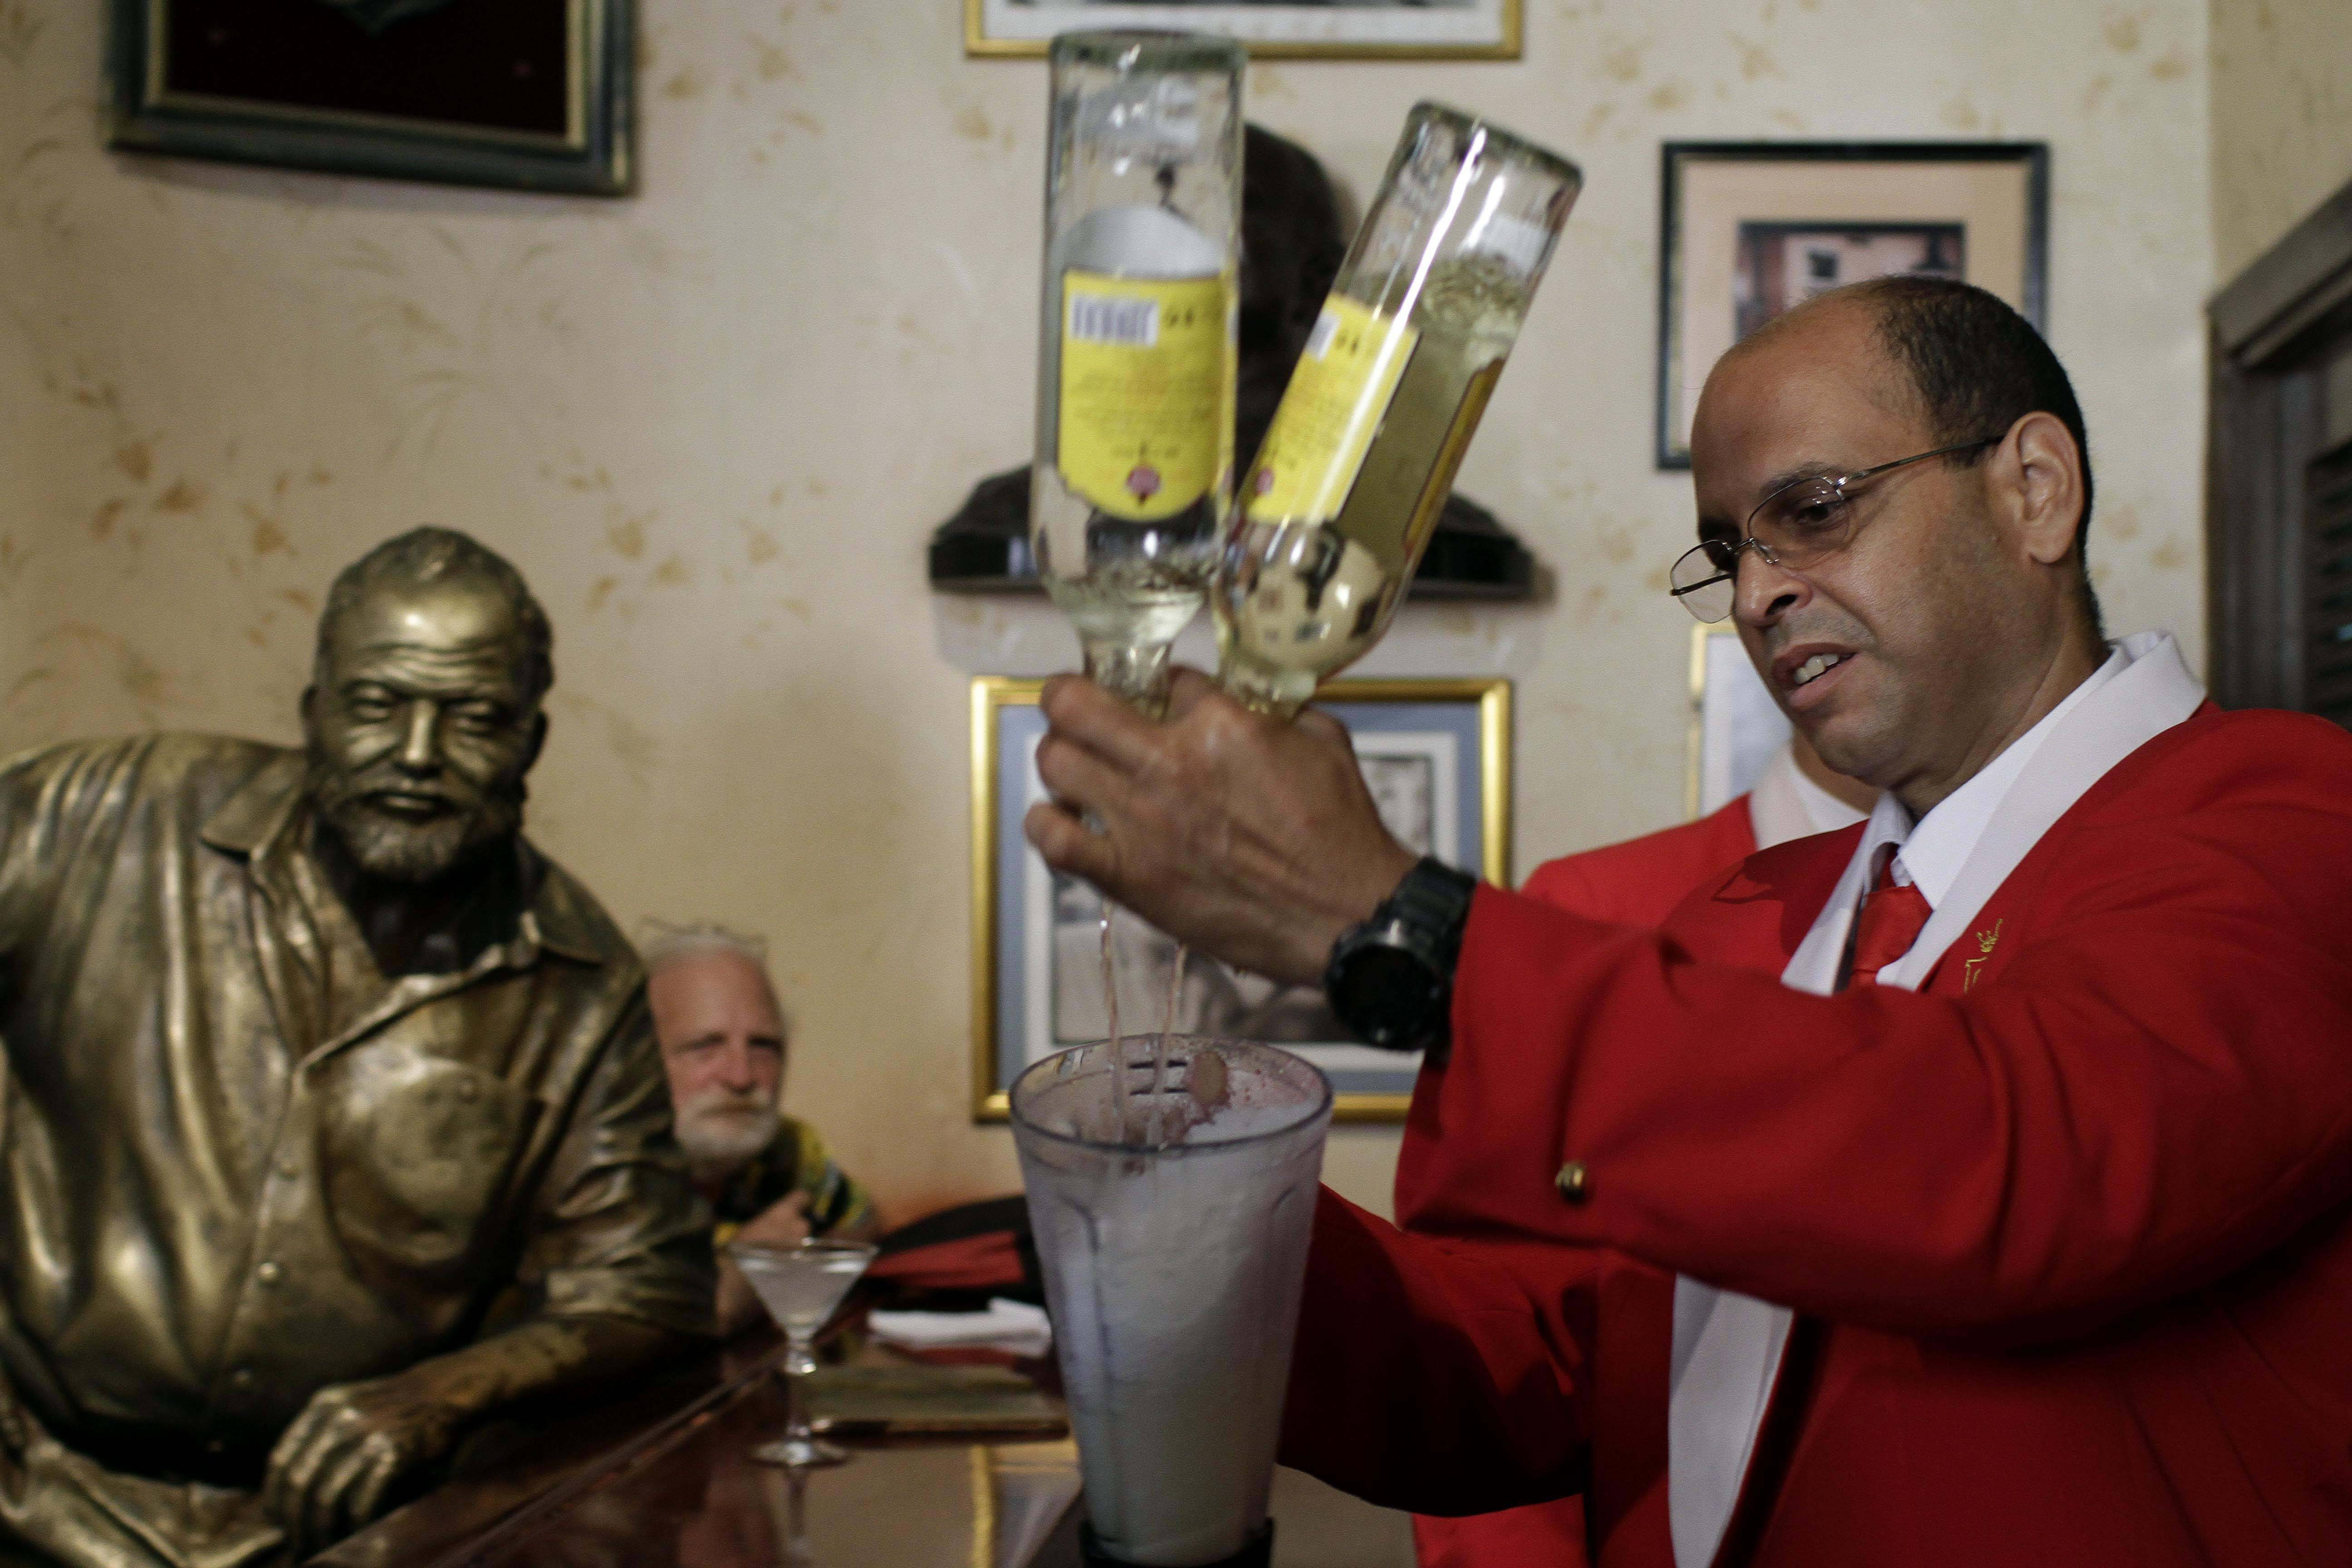 Bartender Alejandro Bolivar prepares a daiquiri at El Floridita tavern in Old Havana, Cuba, to honor the anniversary of the birth of its most famous frequent customer, novelist Ernest Hemingway, of whom a life-size sculpture sits bar side.